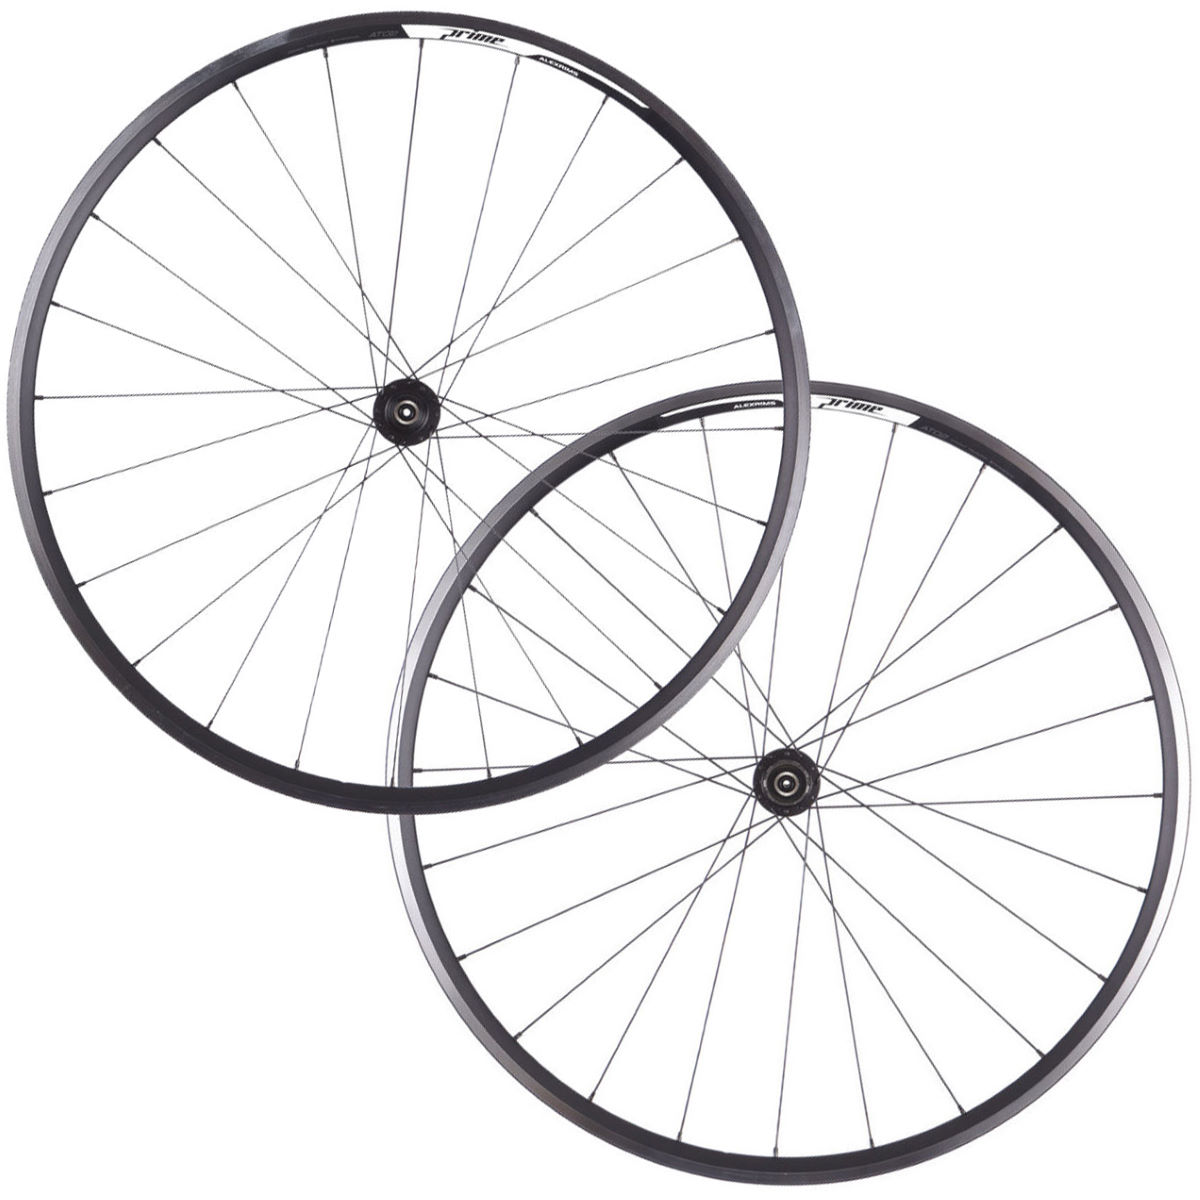 Prime Peloton Road Wheelset   Performance Wheels